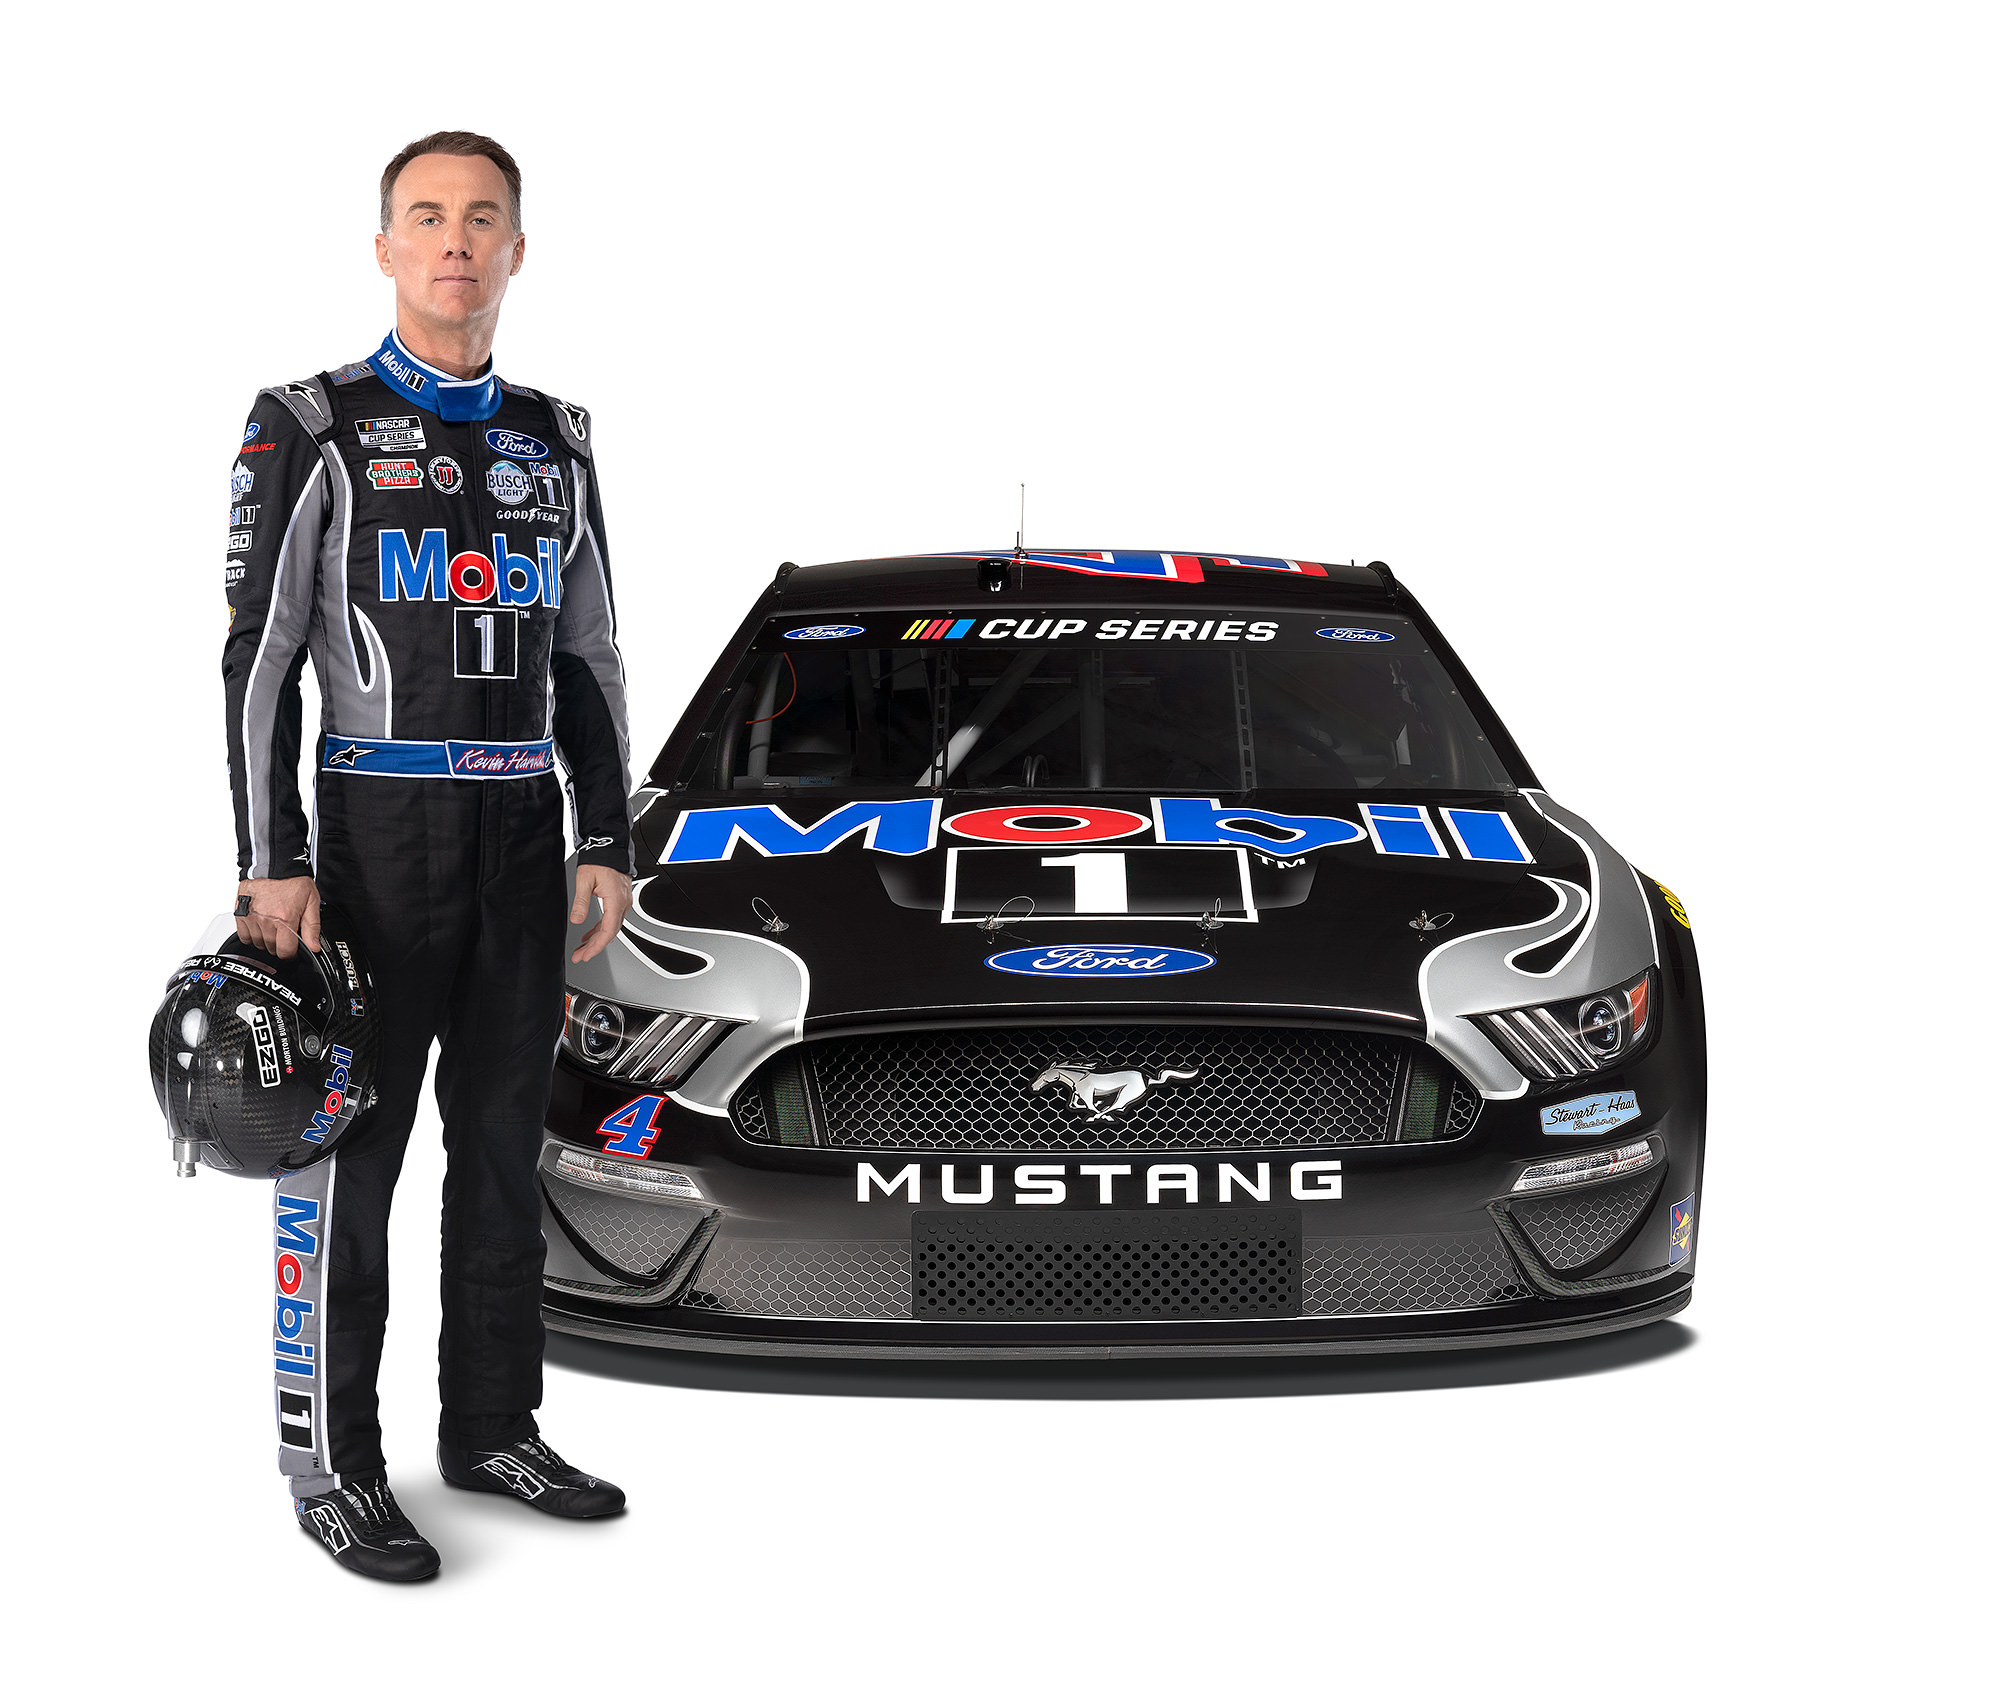 Kevin Harvick next to NASCAR Ford Mustang